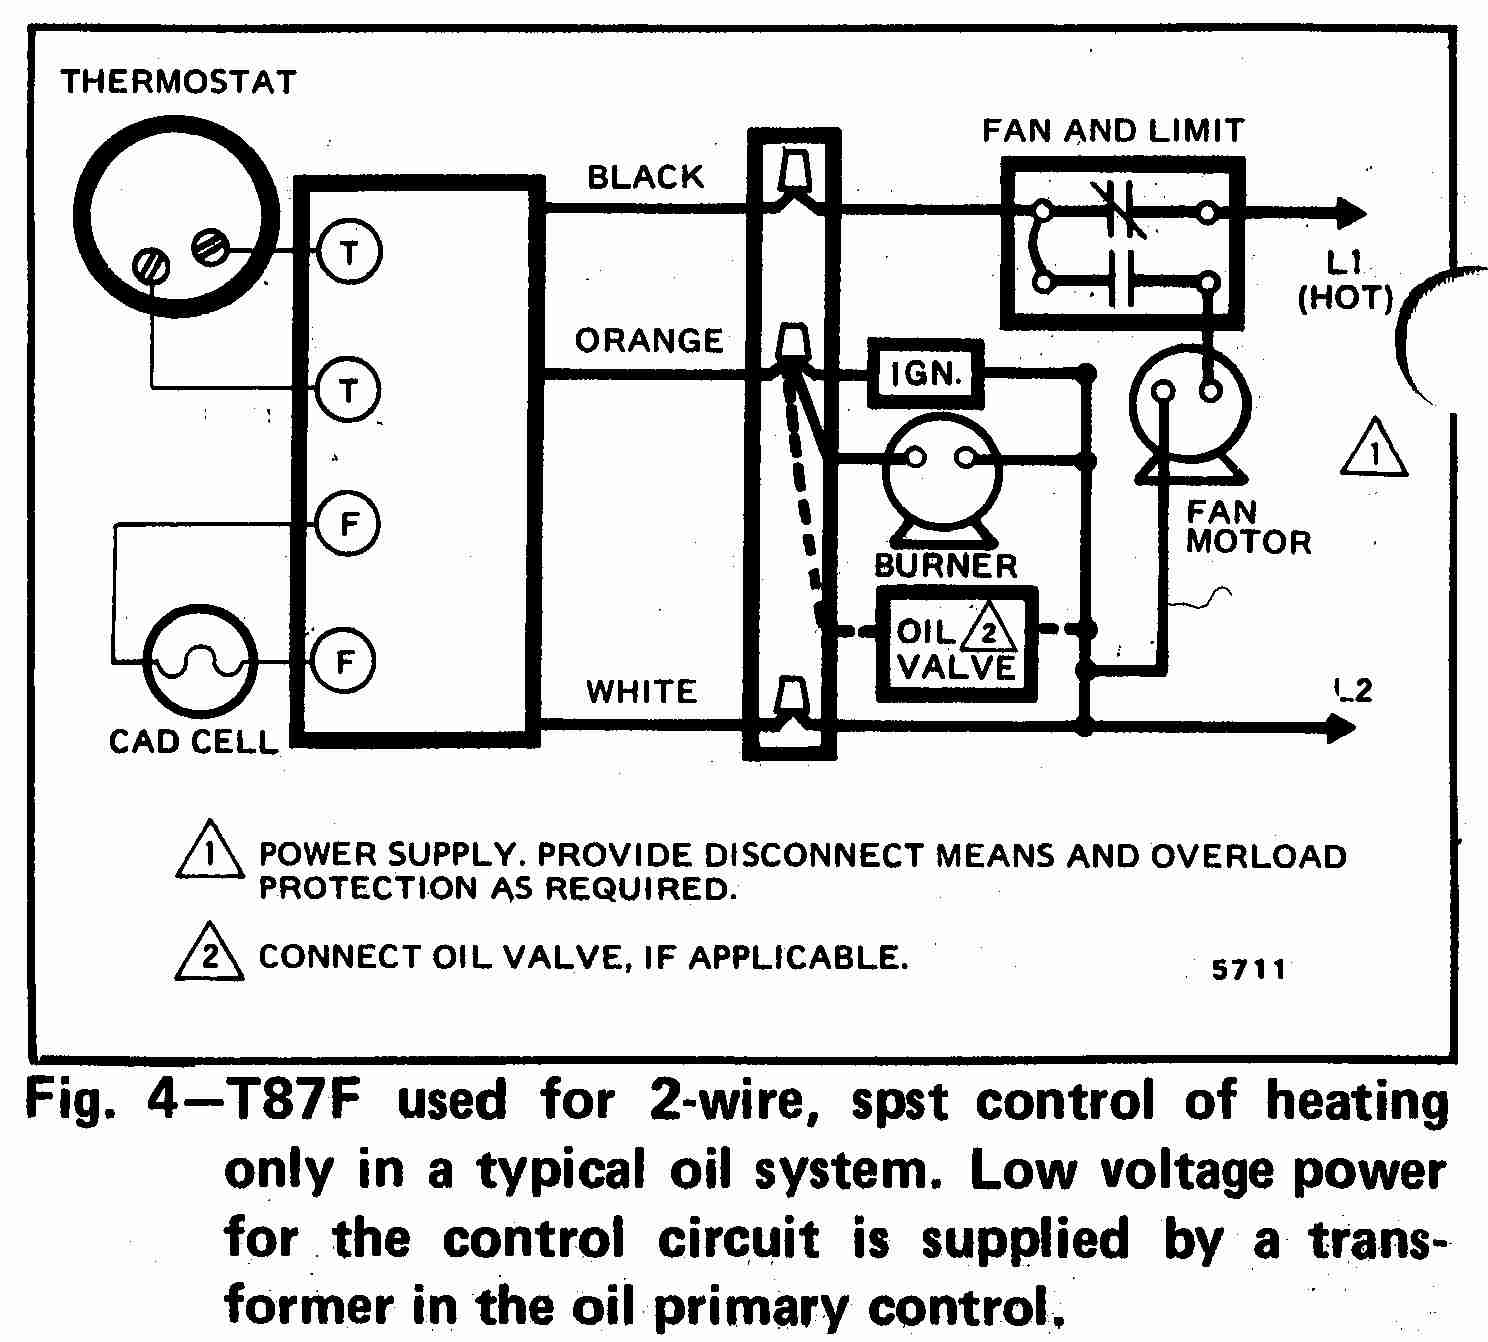 TT_T87F_0002_2W_DJF hvac control wiring diagram hvac compressor wiring diagram \u2022 free honeywell pressure switch wiring diagram at gsmportal.co